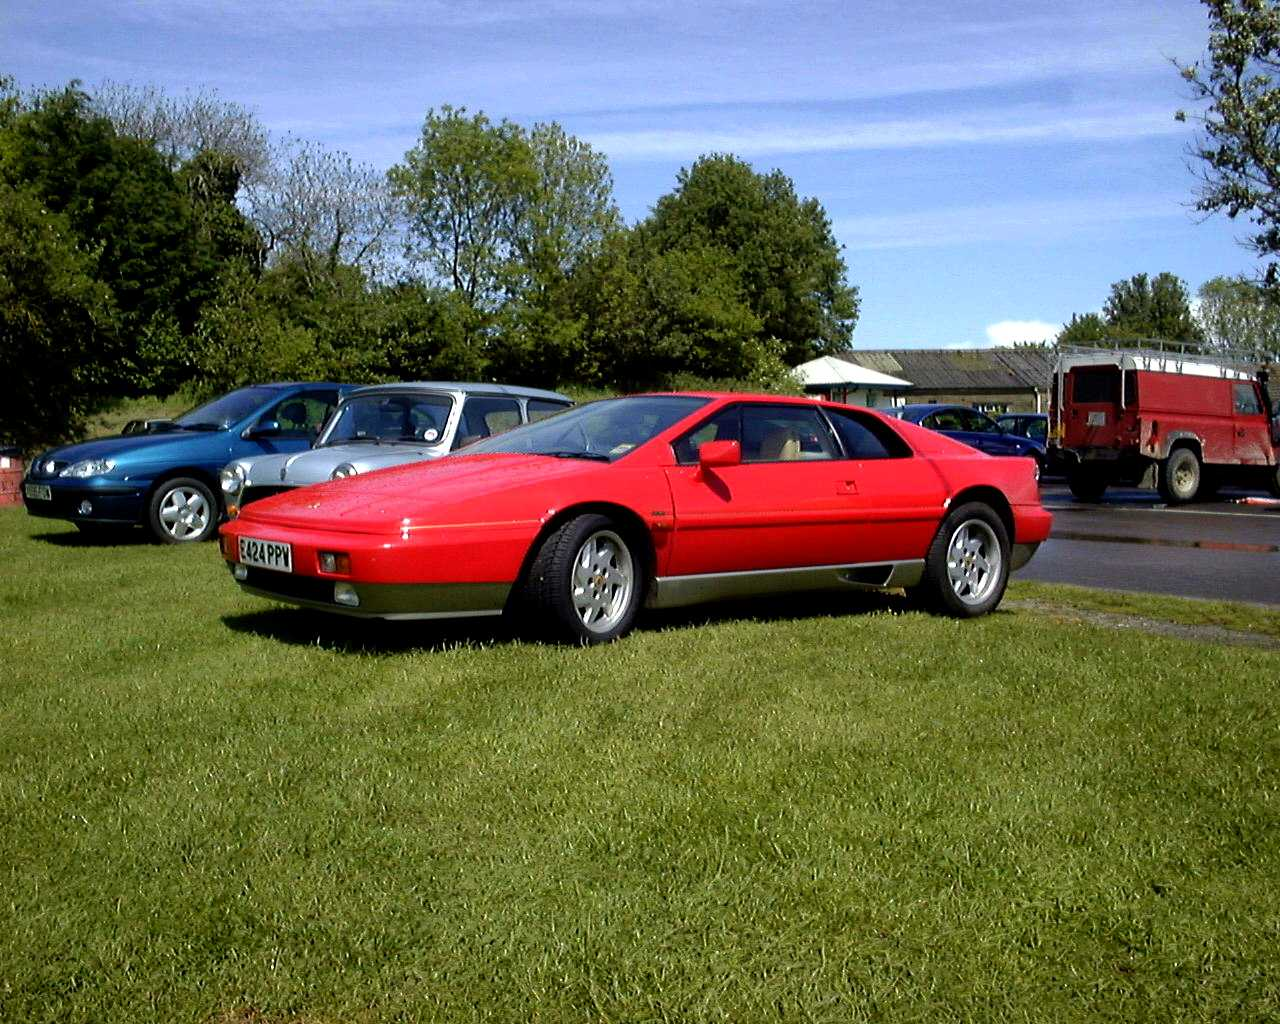 Lotus_Esprit_Turbo_1987.JPG